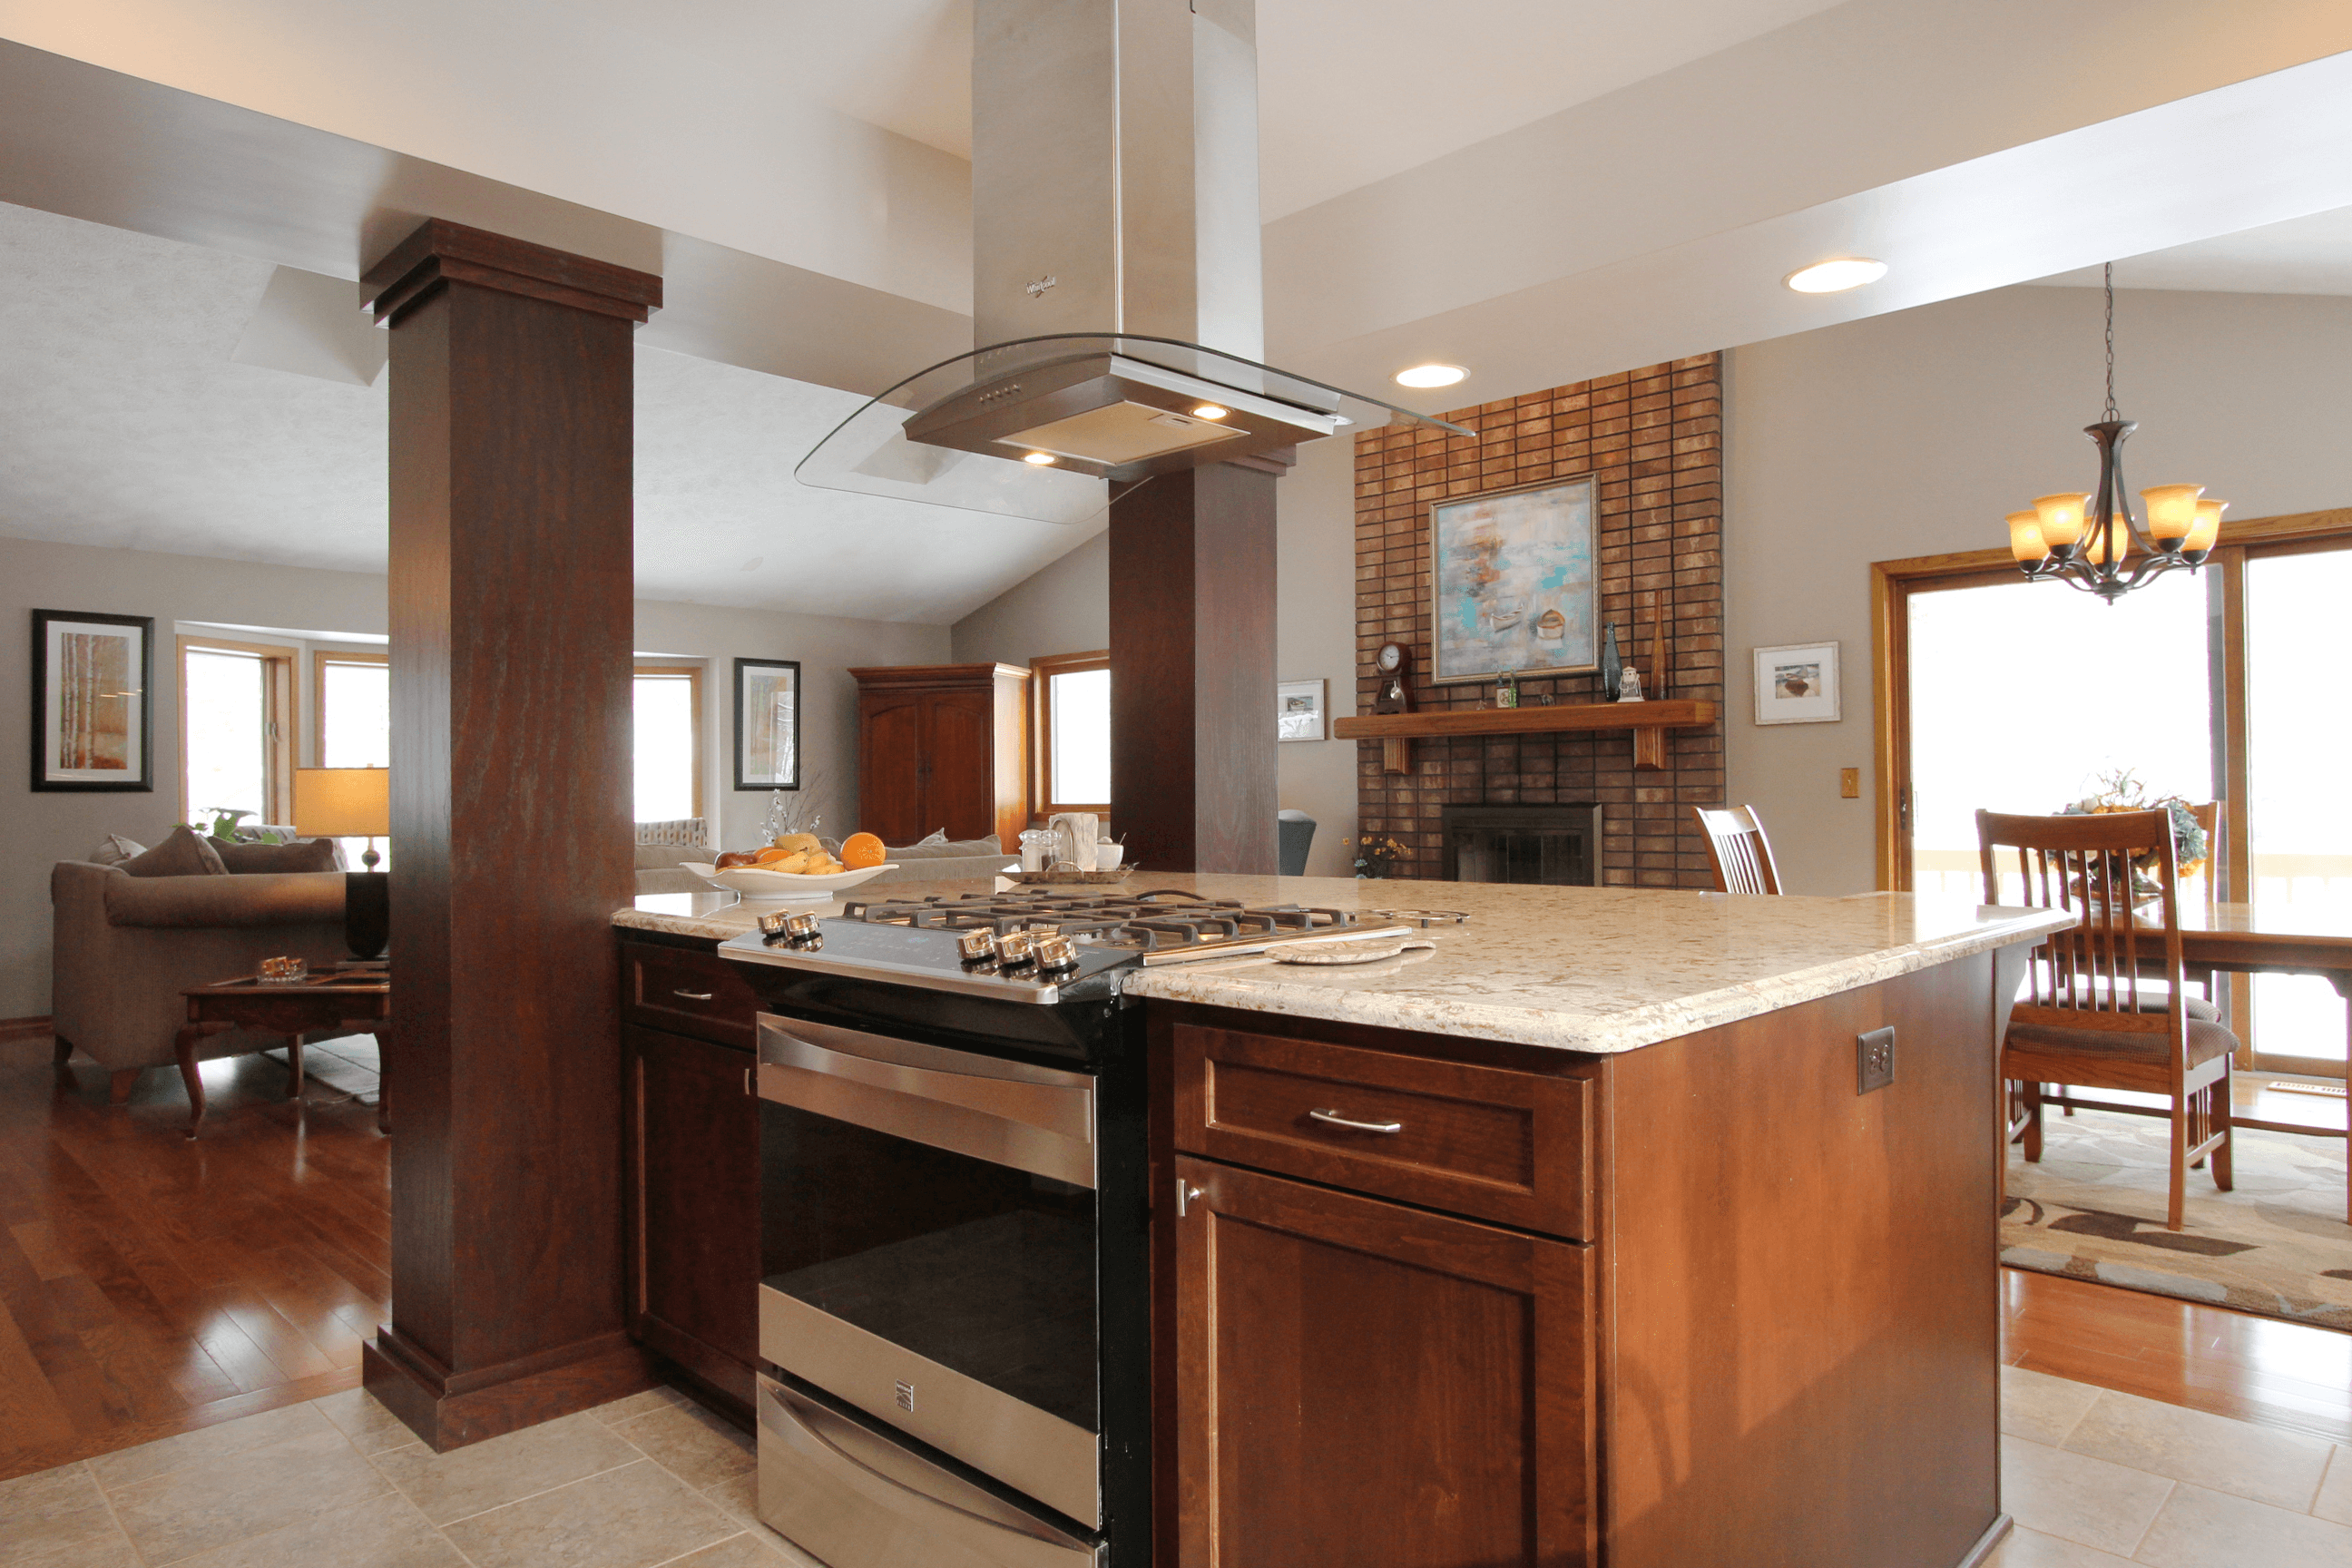 five tips for designing the functional kitchen island - kitchen island with cooktop